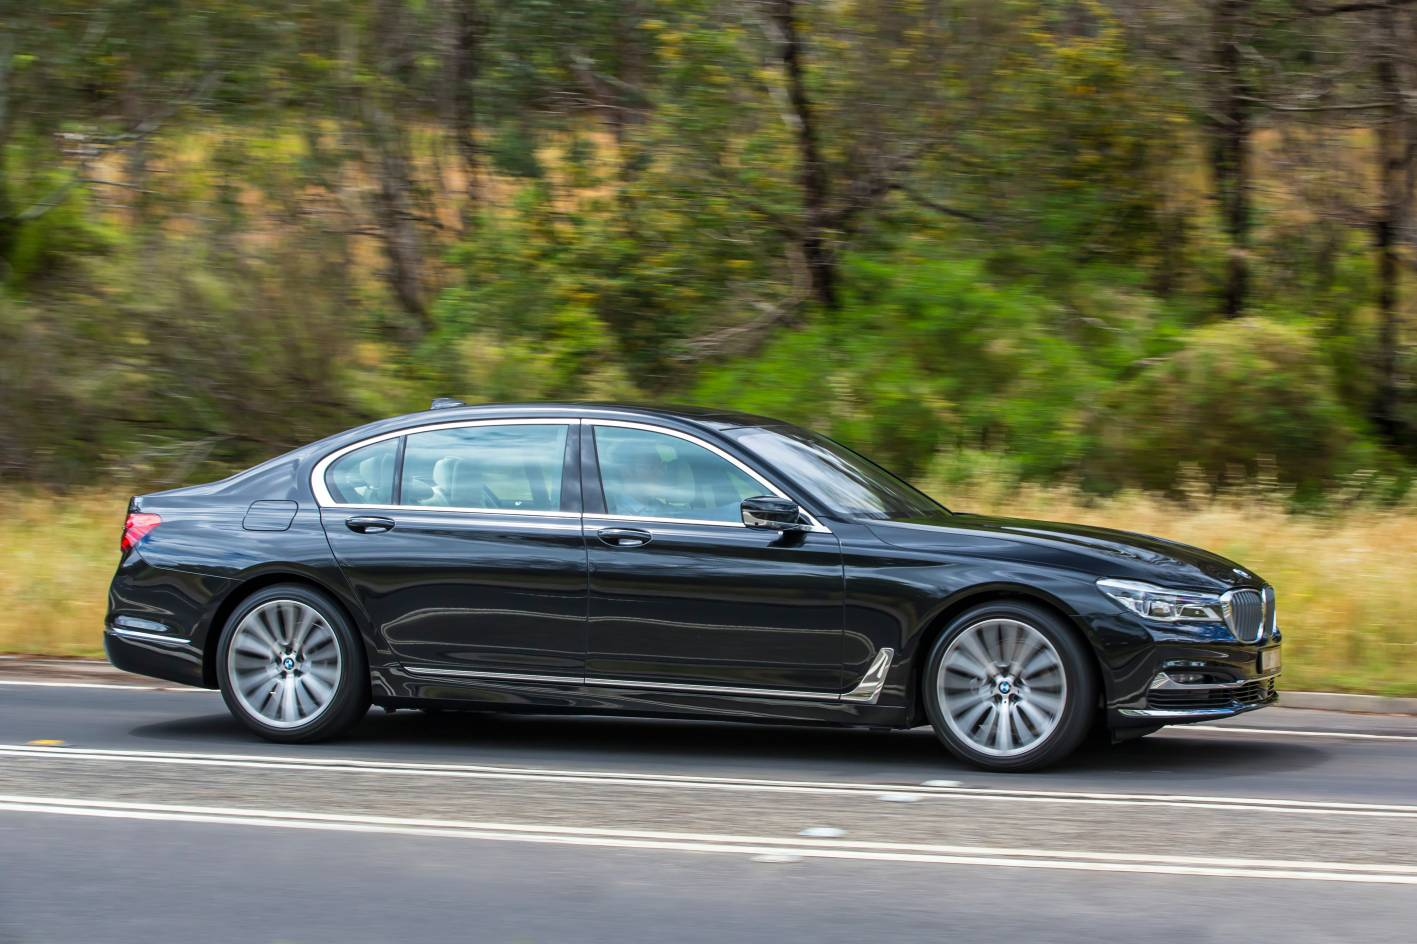 BMW Cars 2016 7 Series Pricing And Specification